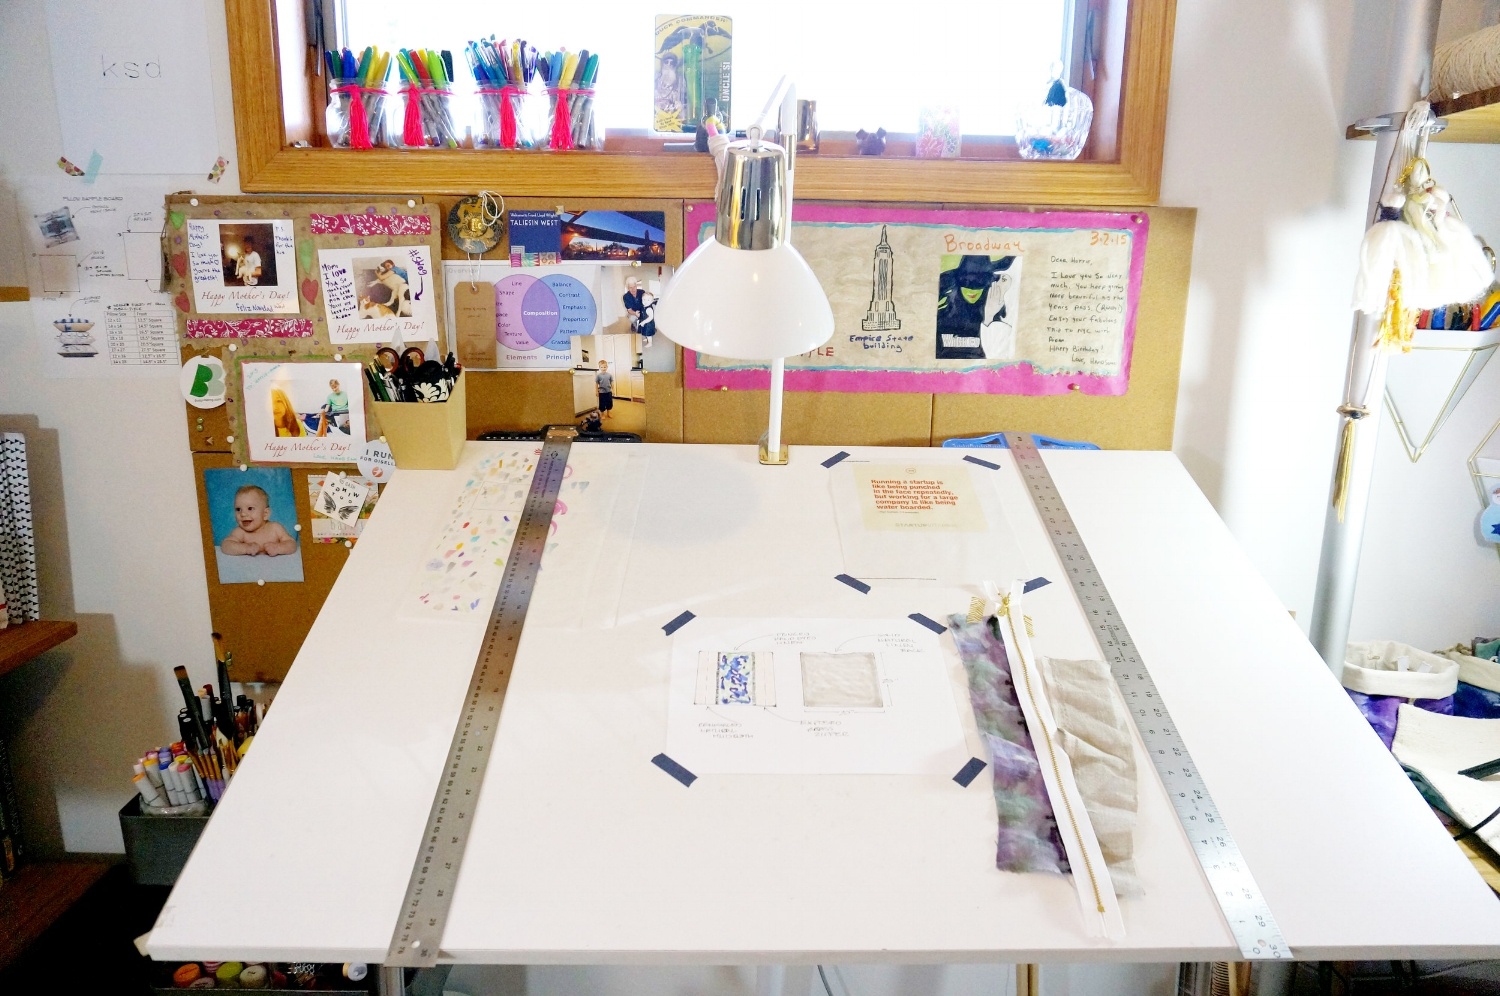 I spend a lot of time at my drafting table for KSDesigns and school. I am constantly taping and tacking up images and sayings that inspire me and make me happy